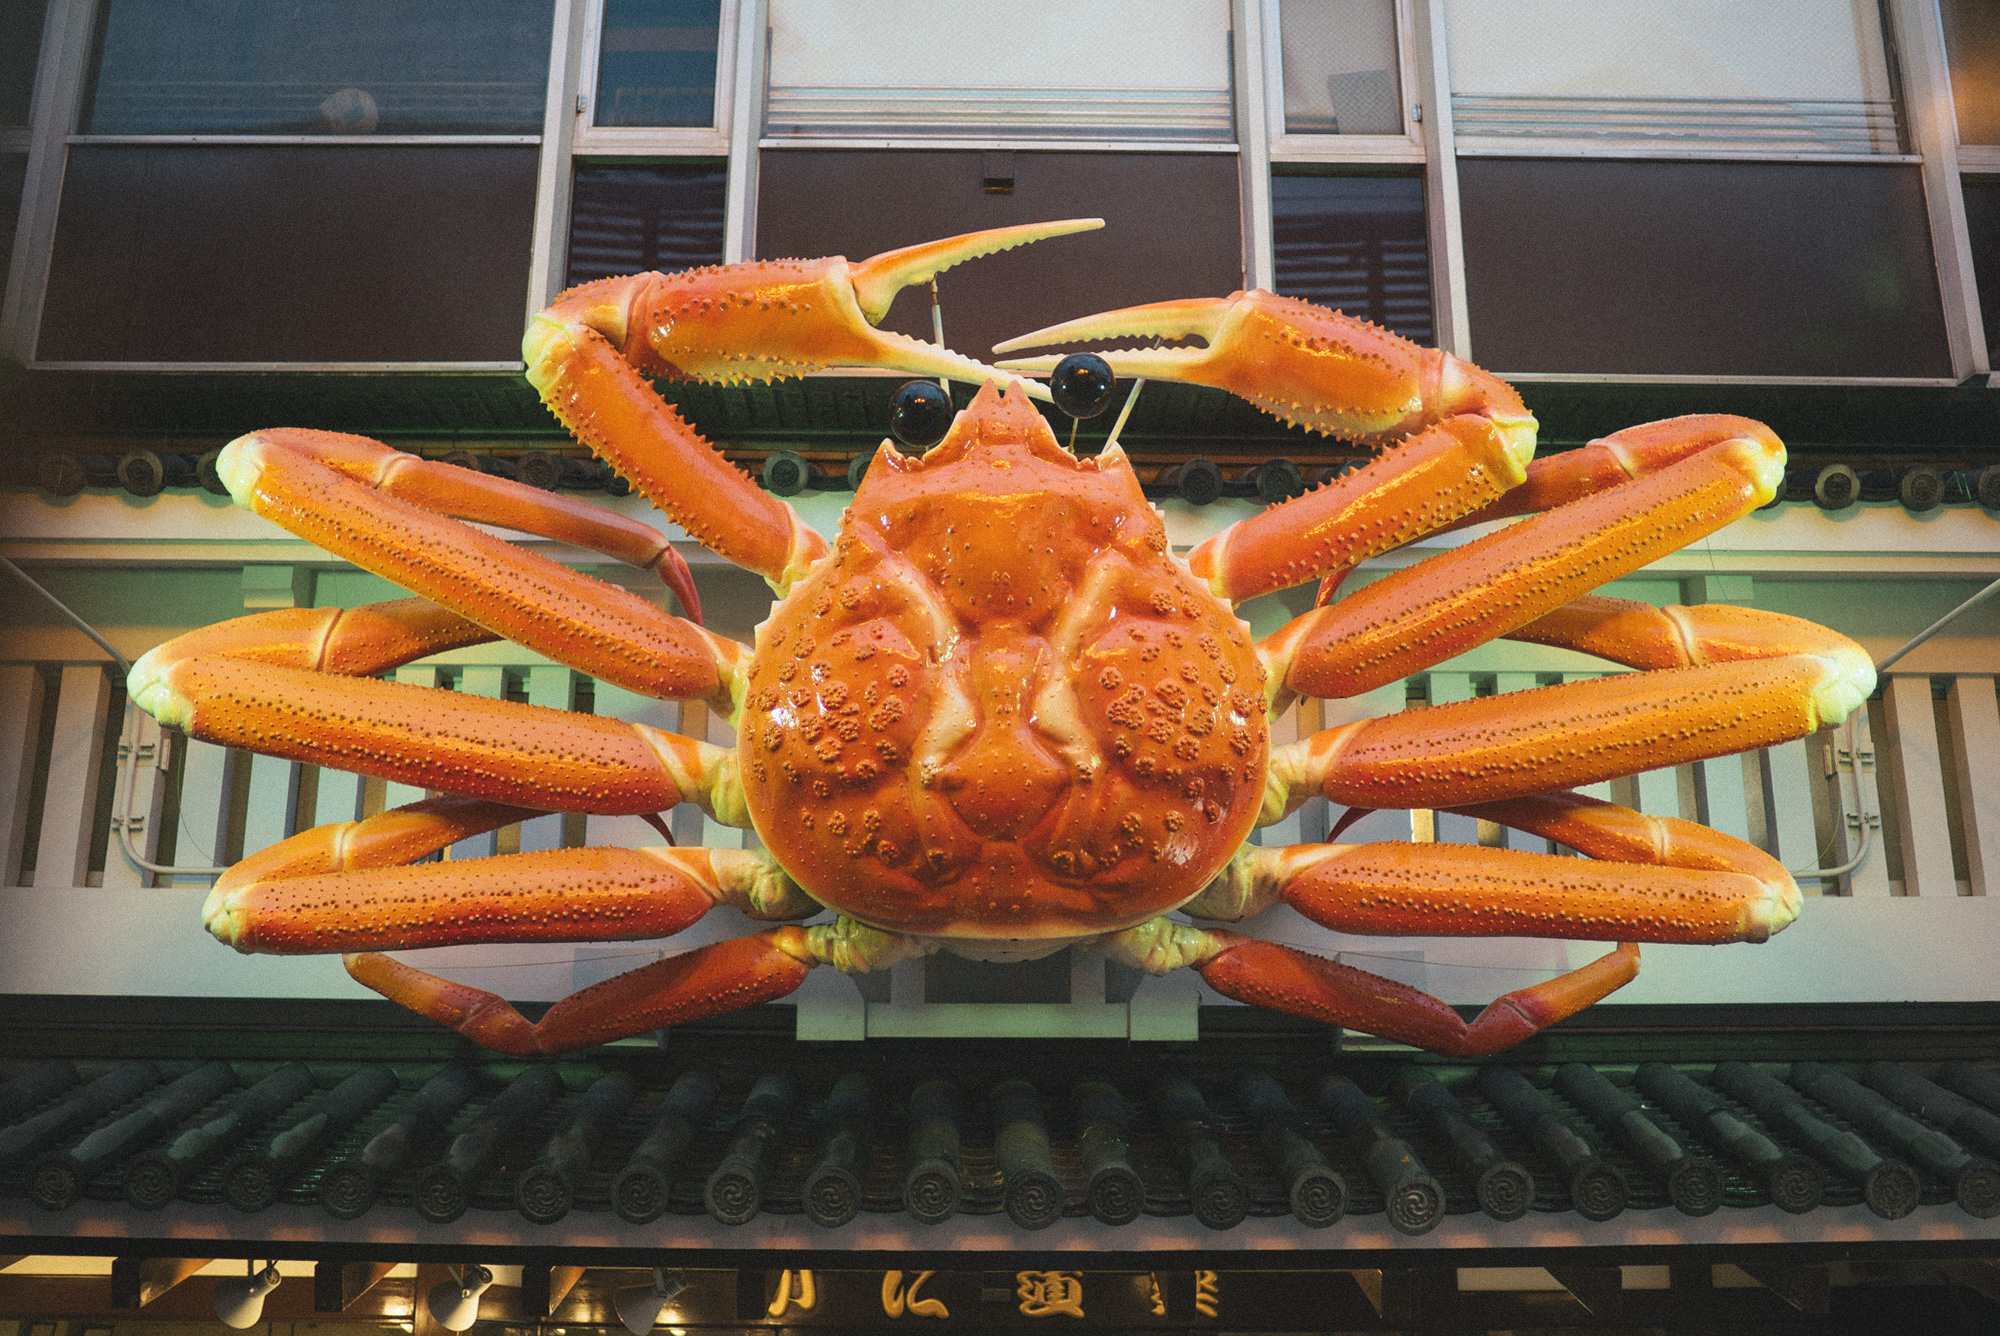 Lots and lots of paper mache signs, some, like this crab were animated (which brings me back to seeing one of these signs animating for the very first time when I was a little boy in Japan).